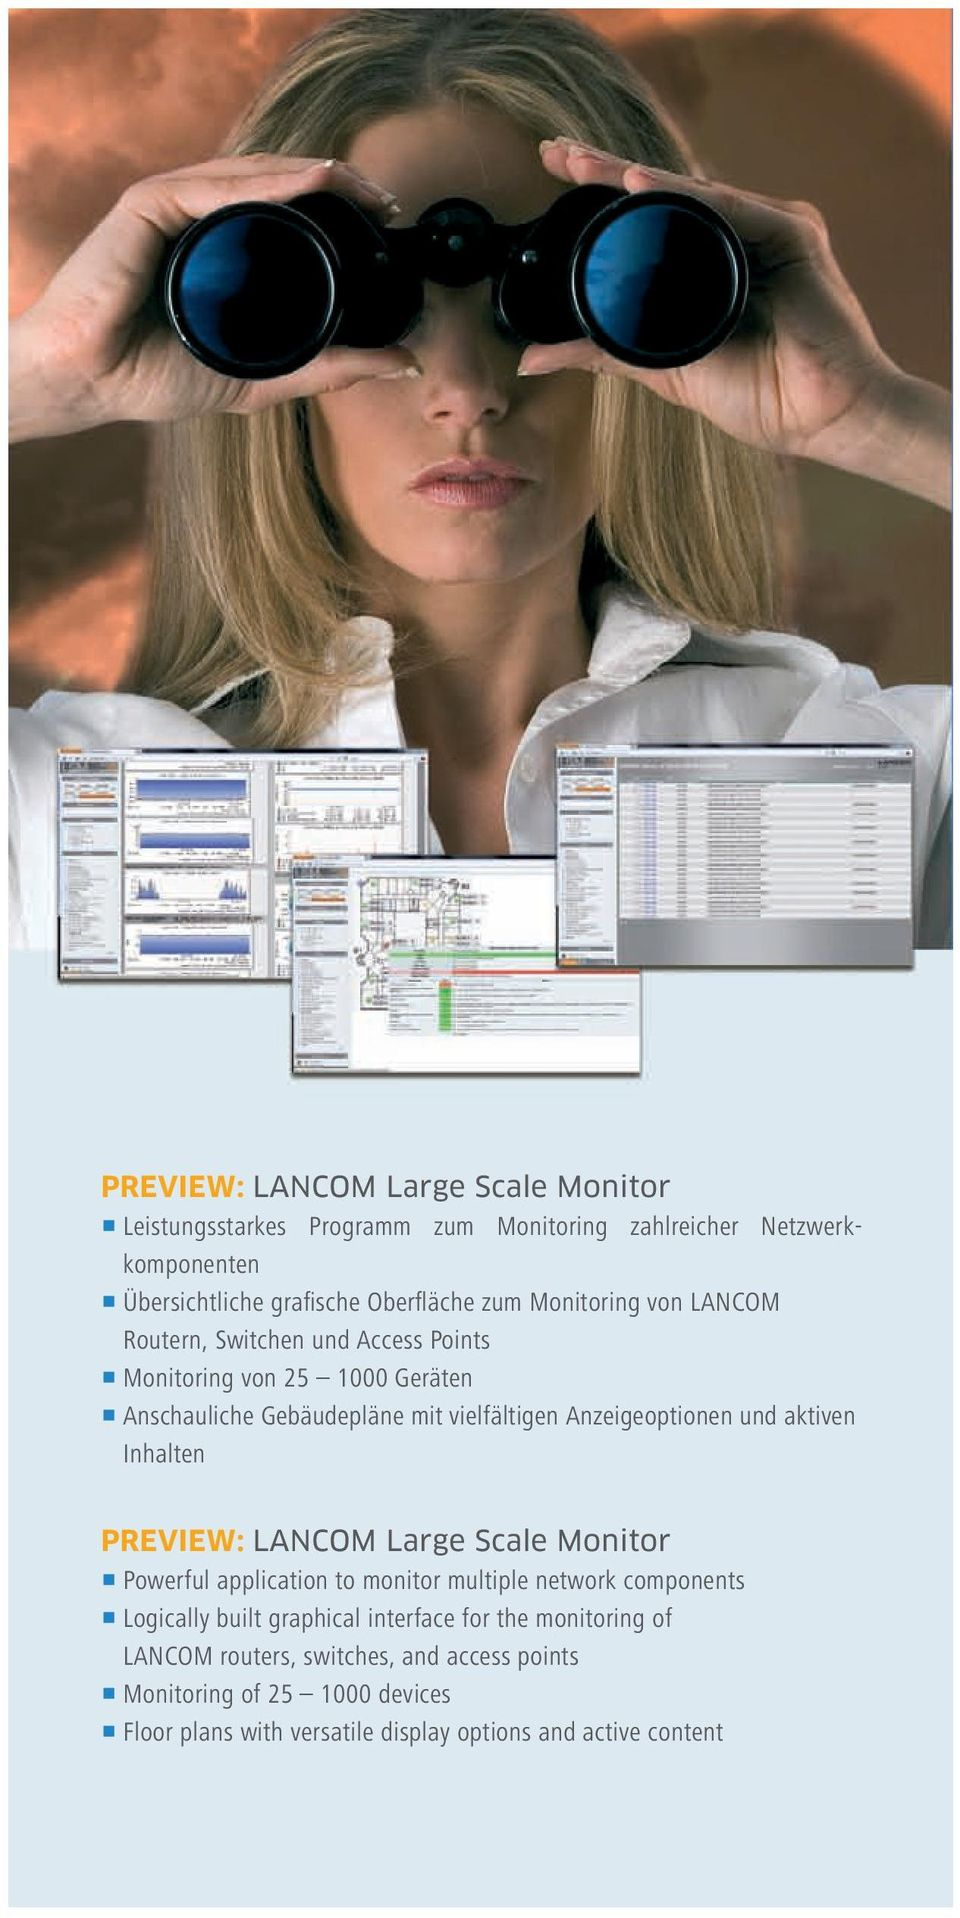 aktiven Inhalten PREVIEW: LANCOM Large Scale Monitor 1 Powerful application to monitor multiple network components 1 Logically built graphical interface